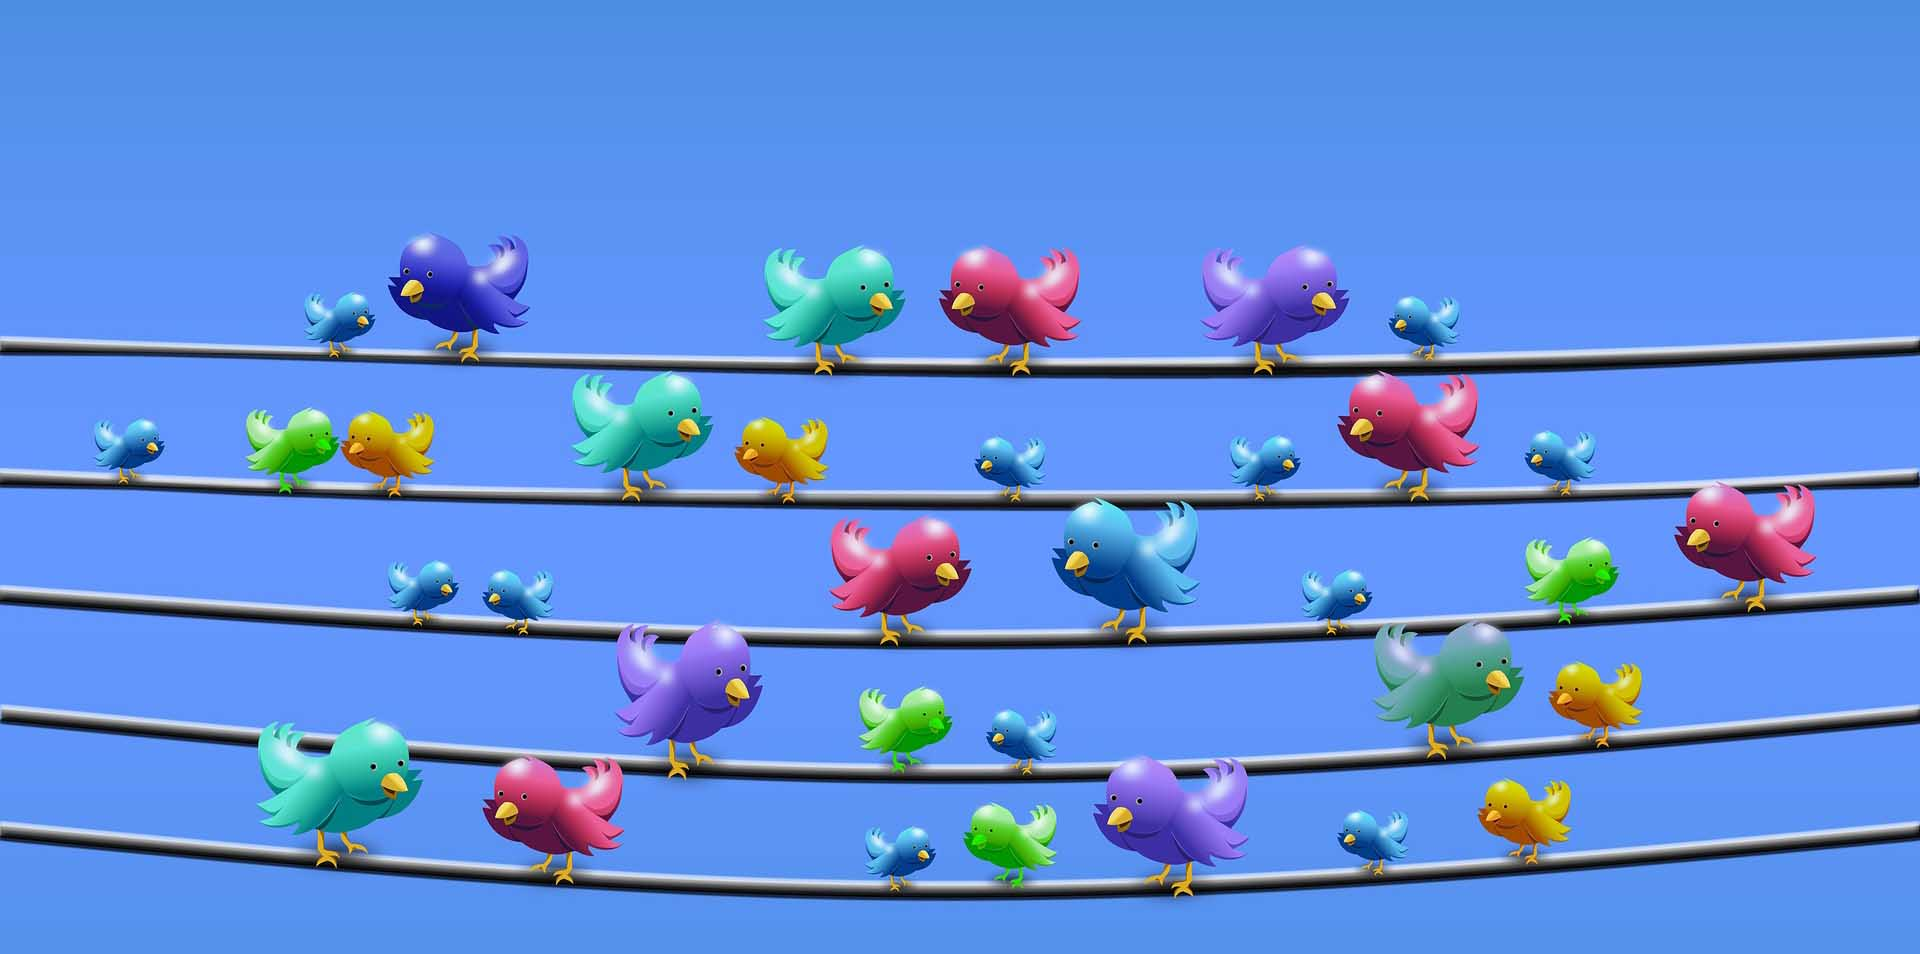 Twitter And Marketing: Steps To Financial Success